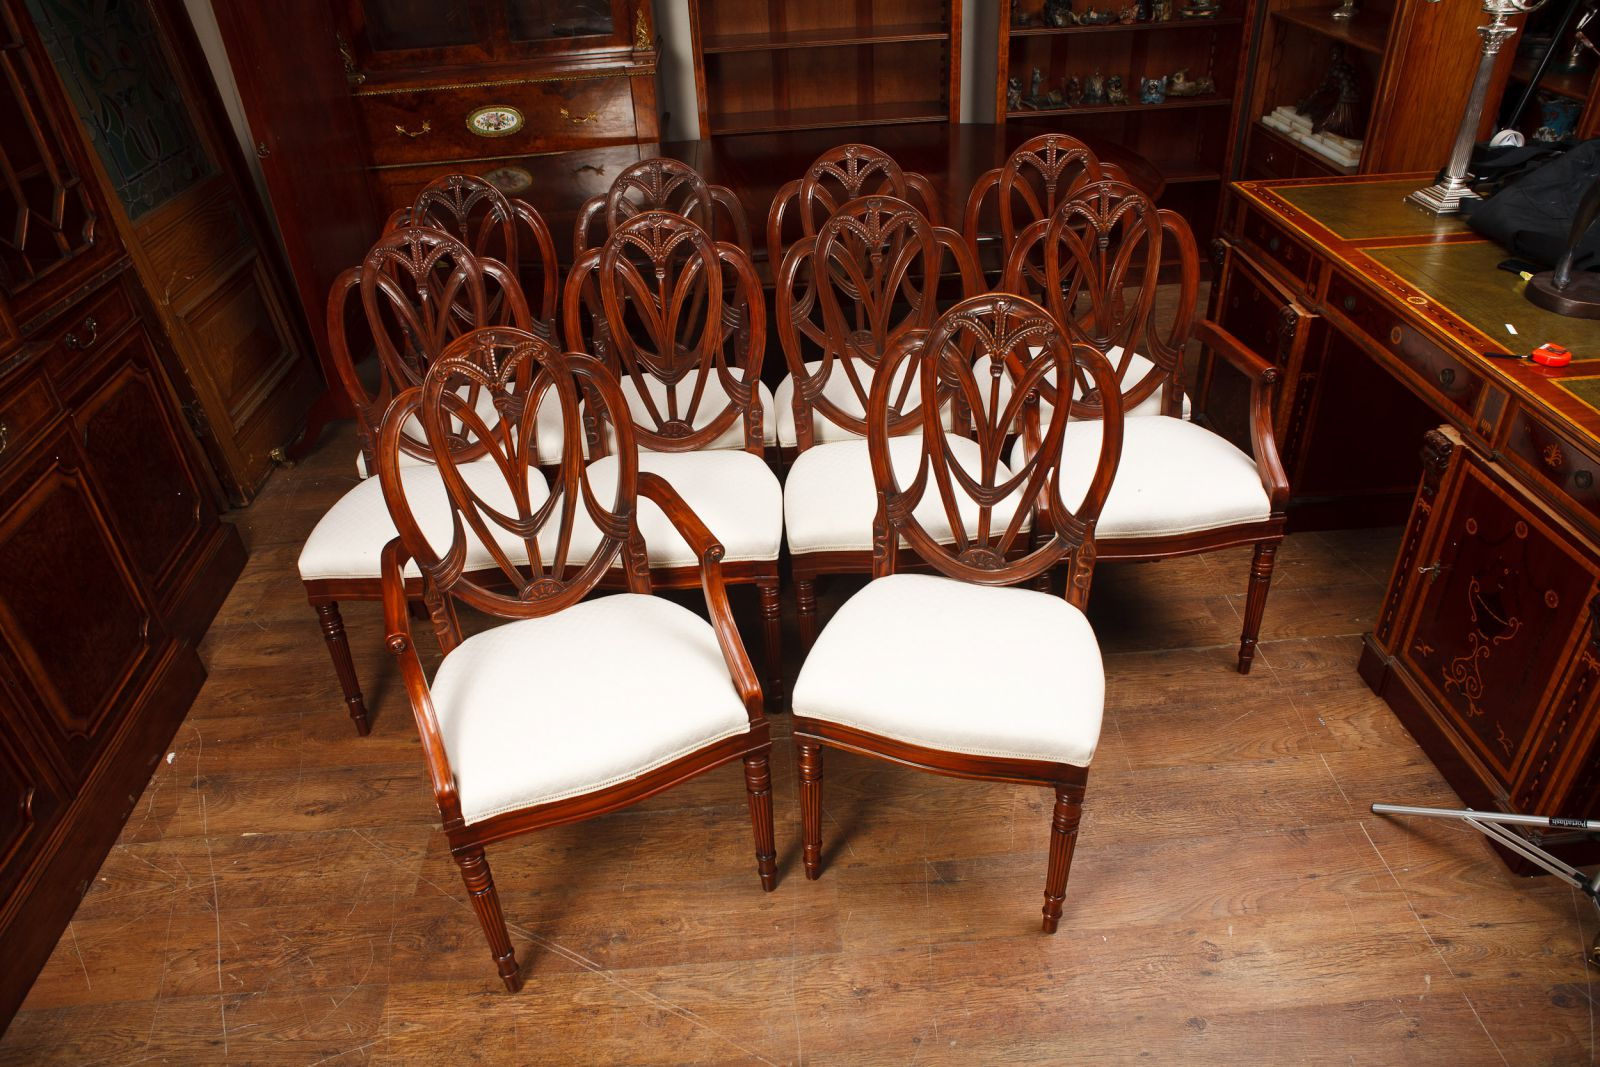 Antique Dining Chairs Hepplewhite Furniture www_canonburyantiques_com (1)